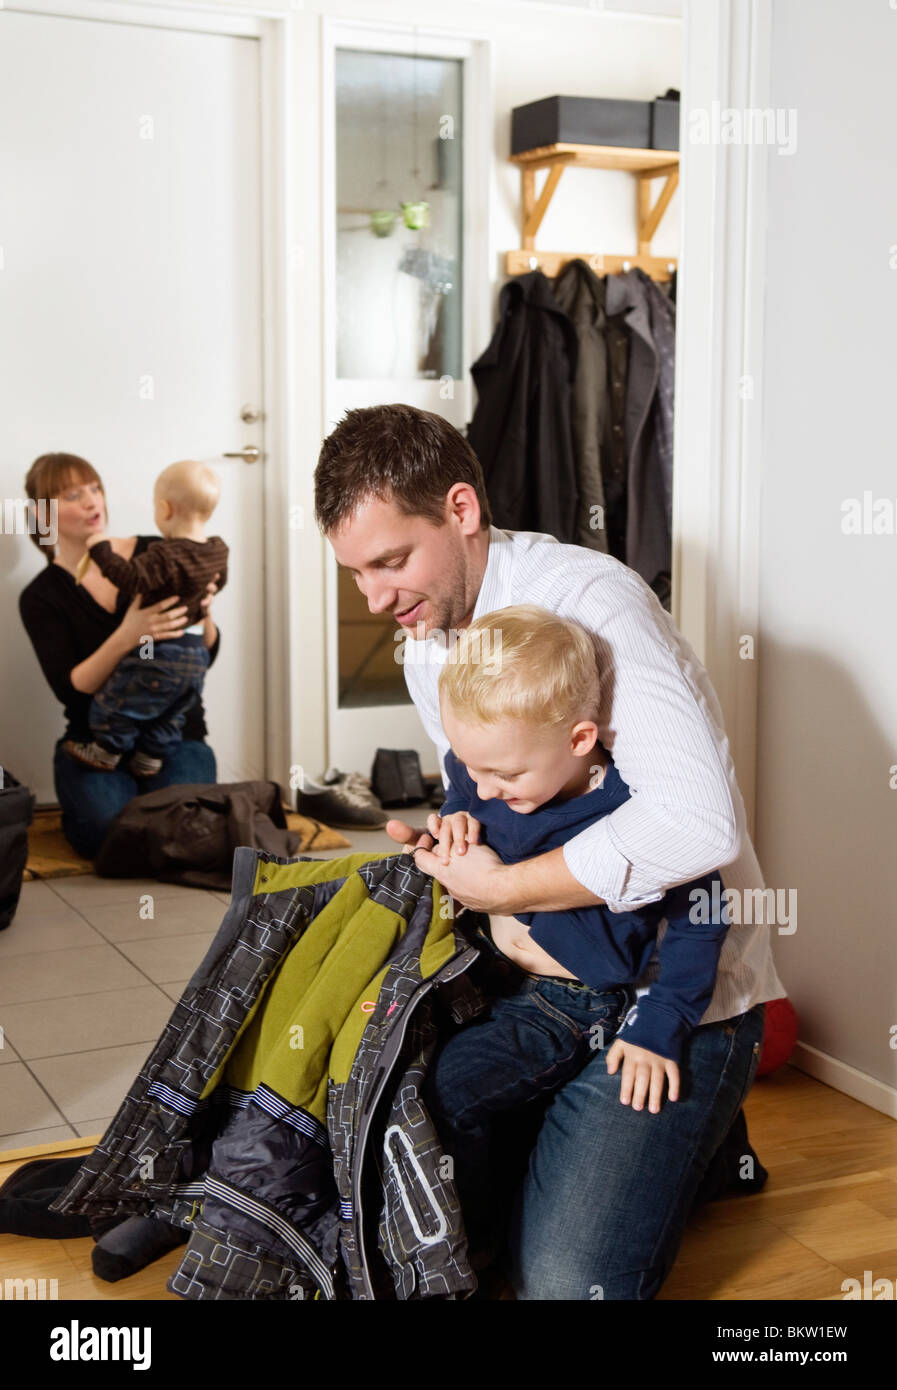 Family putting on the out door cloths - Stock Image